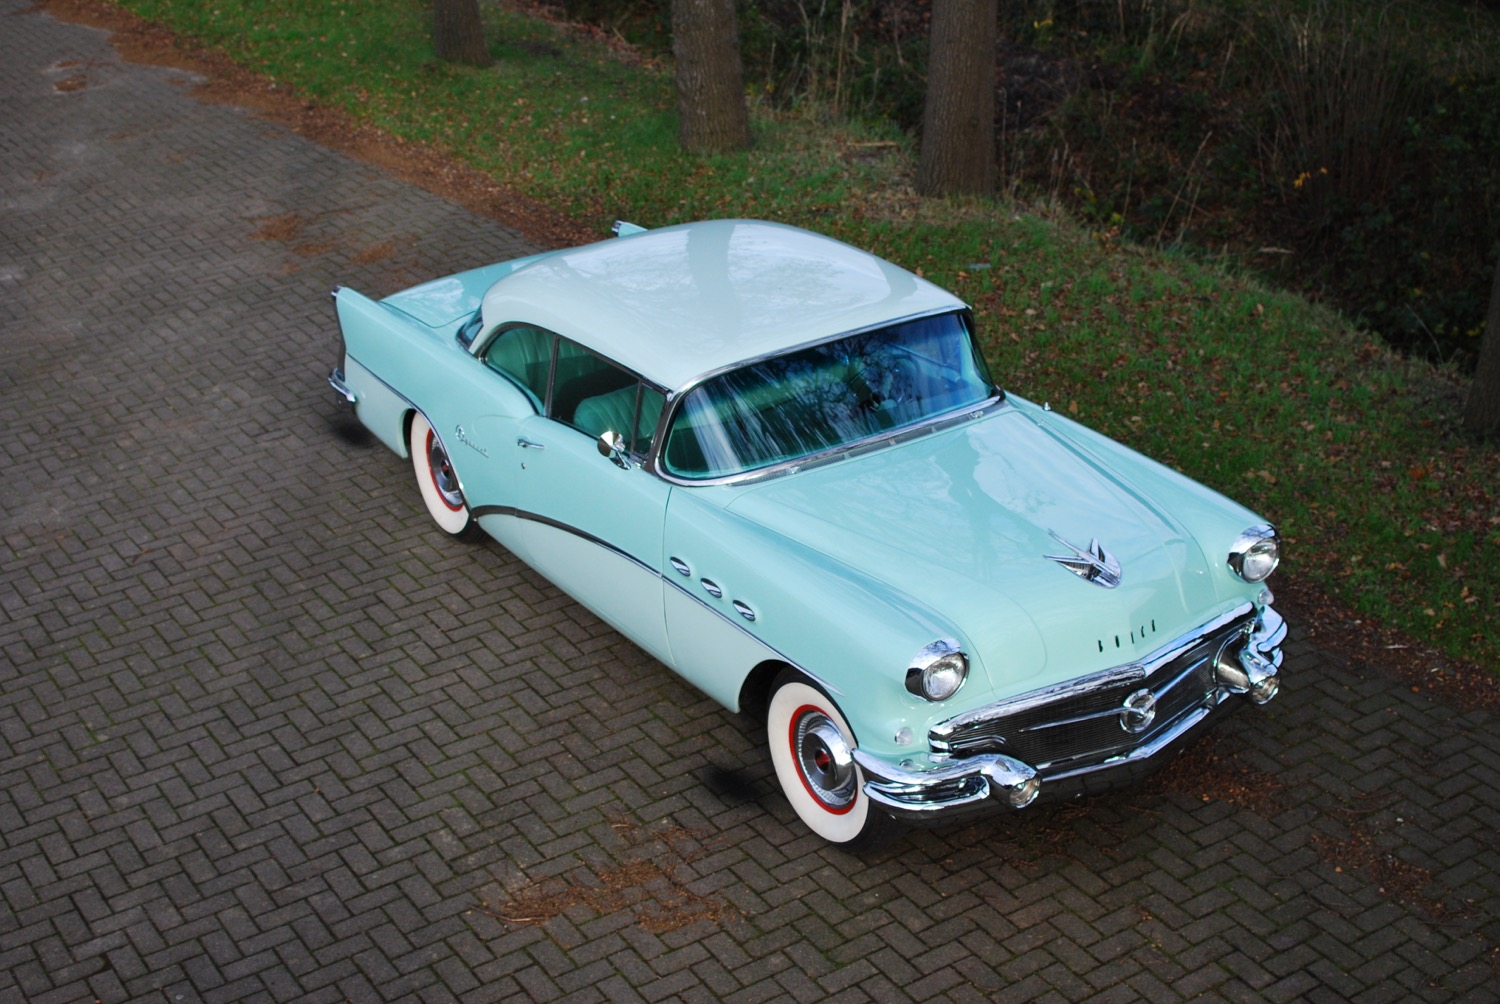 Buick Special 1956 - Bram's Classic Cars